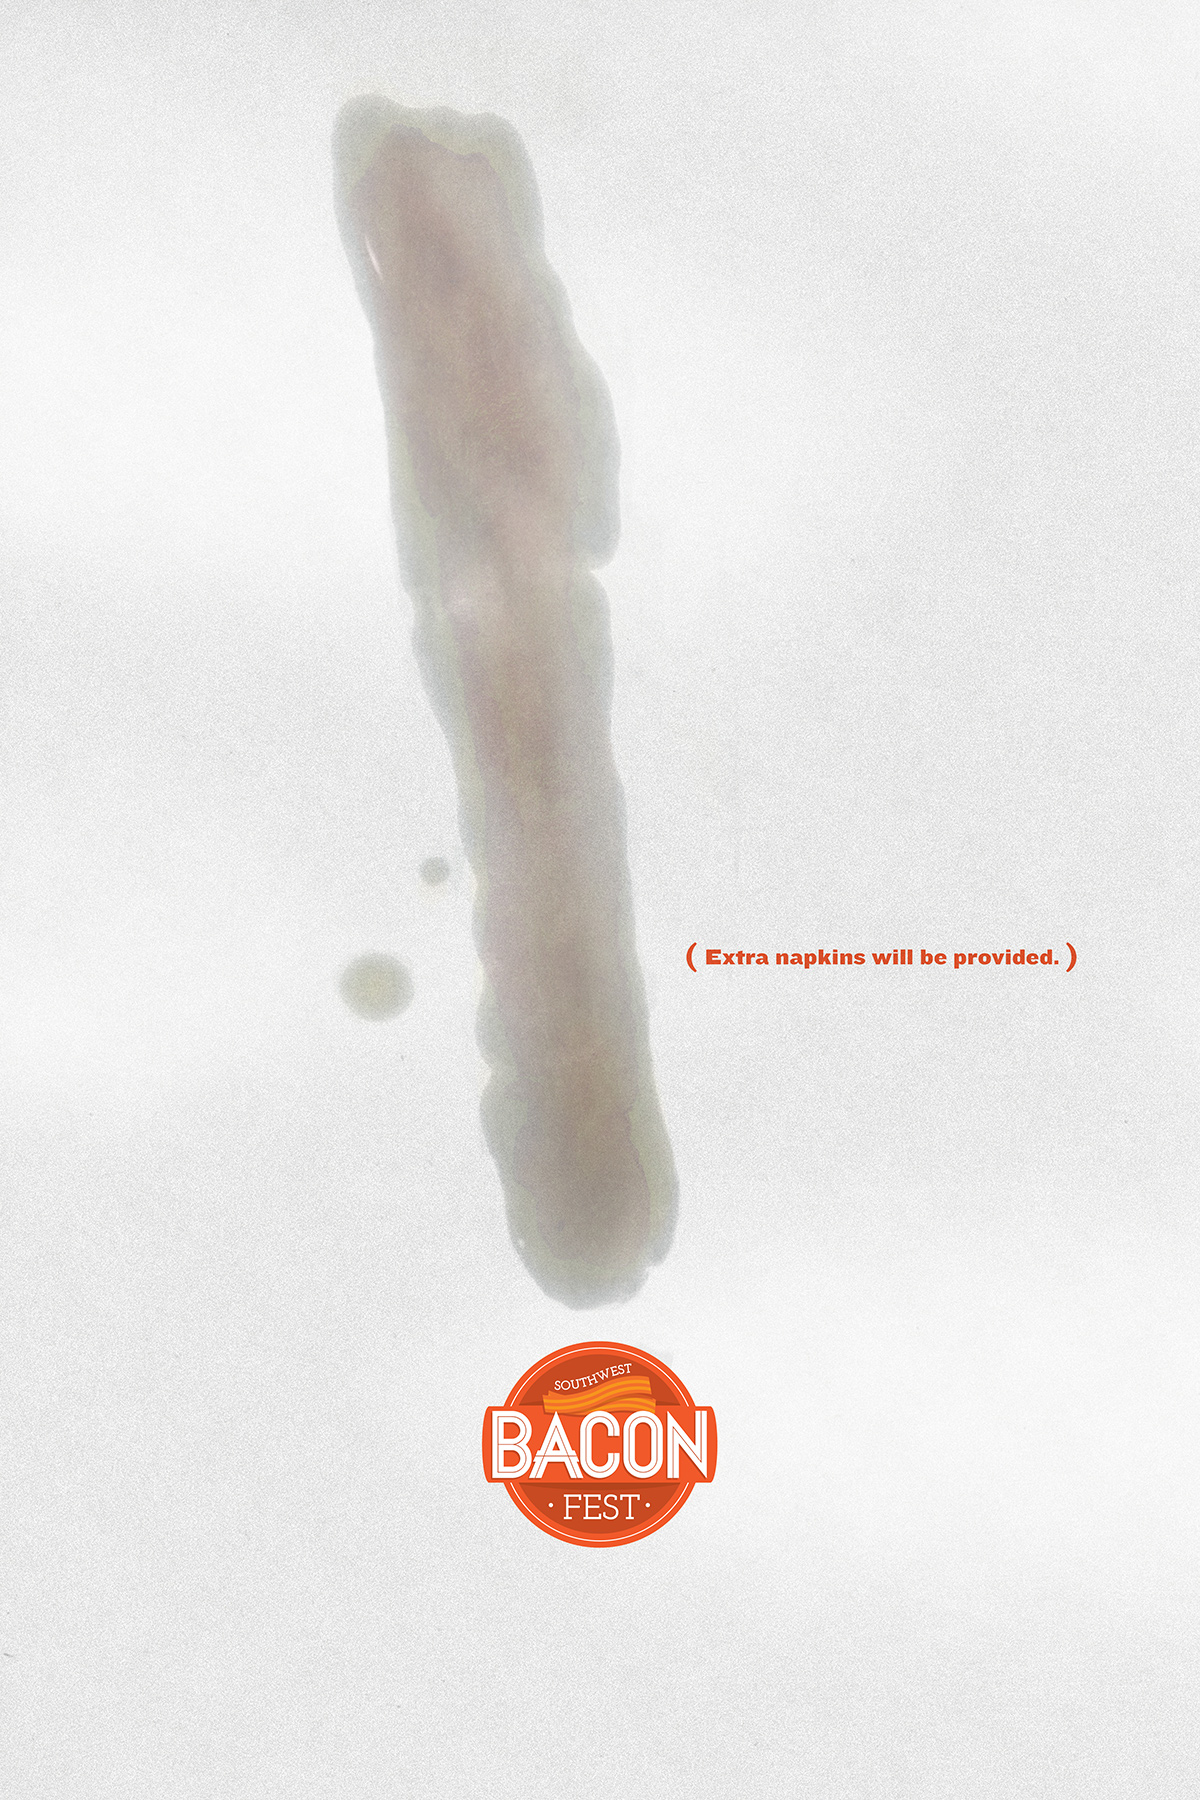 Blue_Bacon_Poster_Back_SM